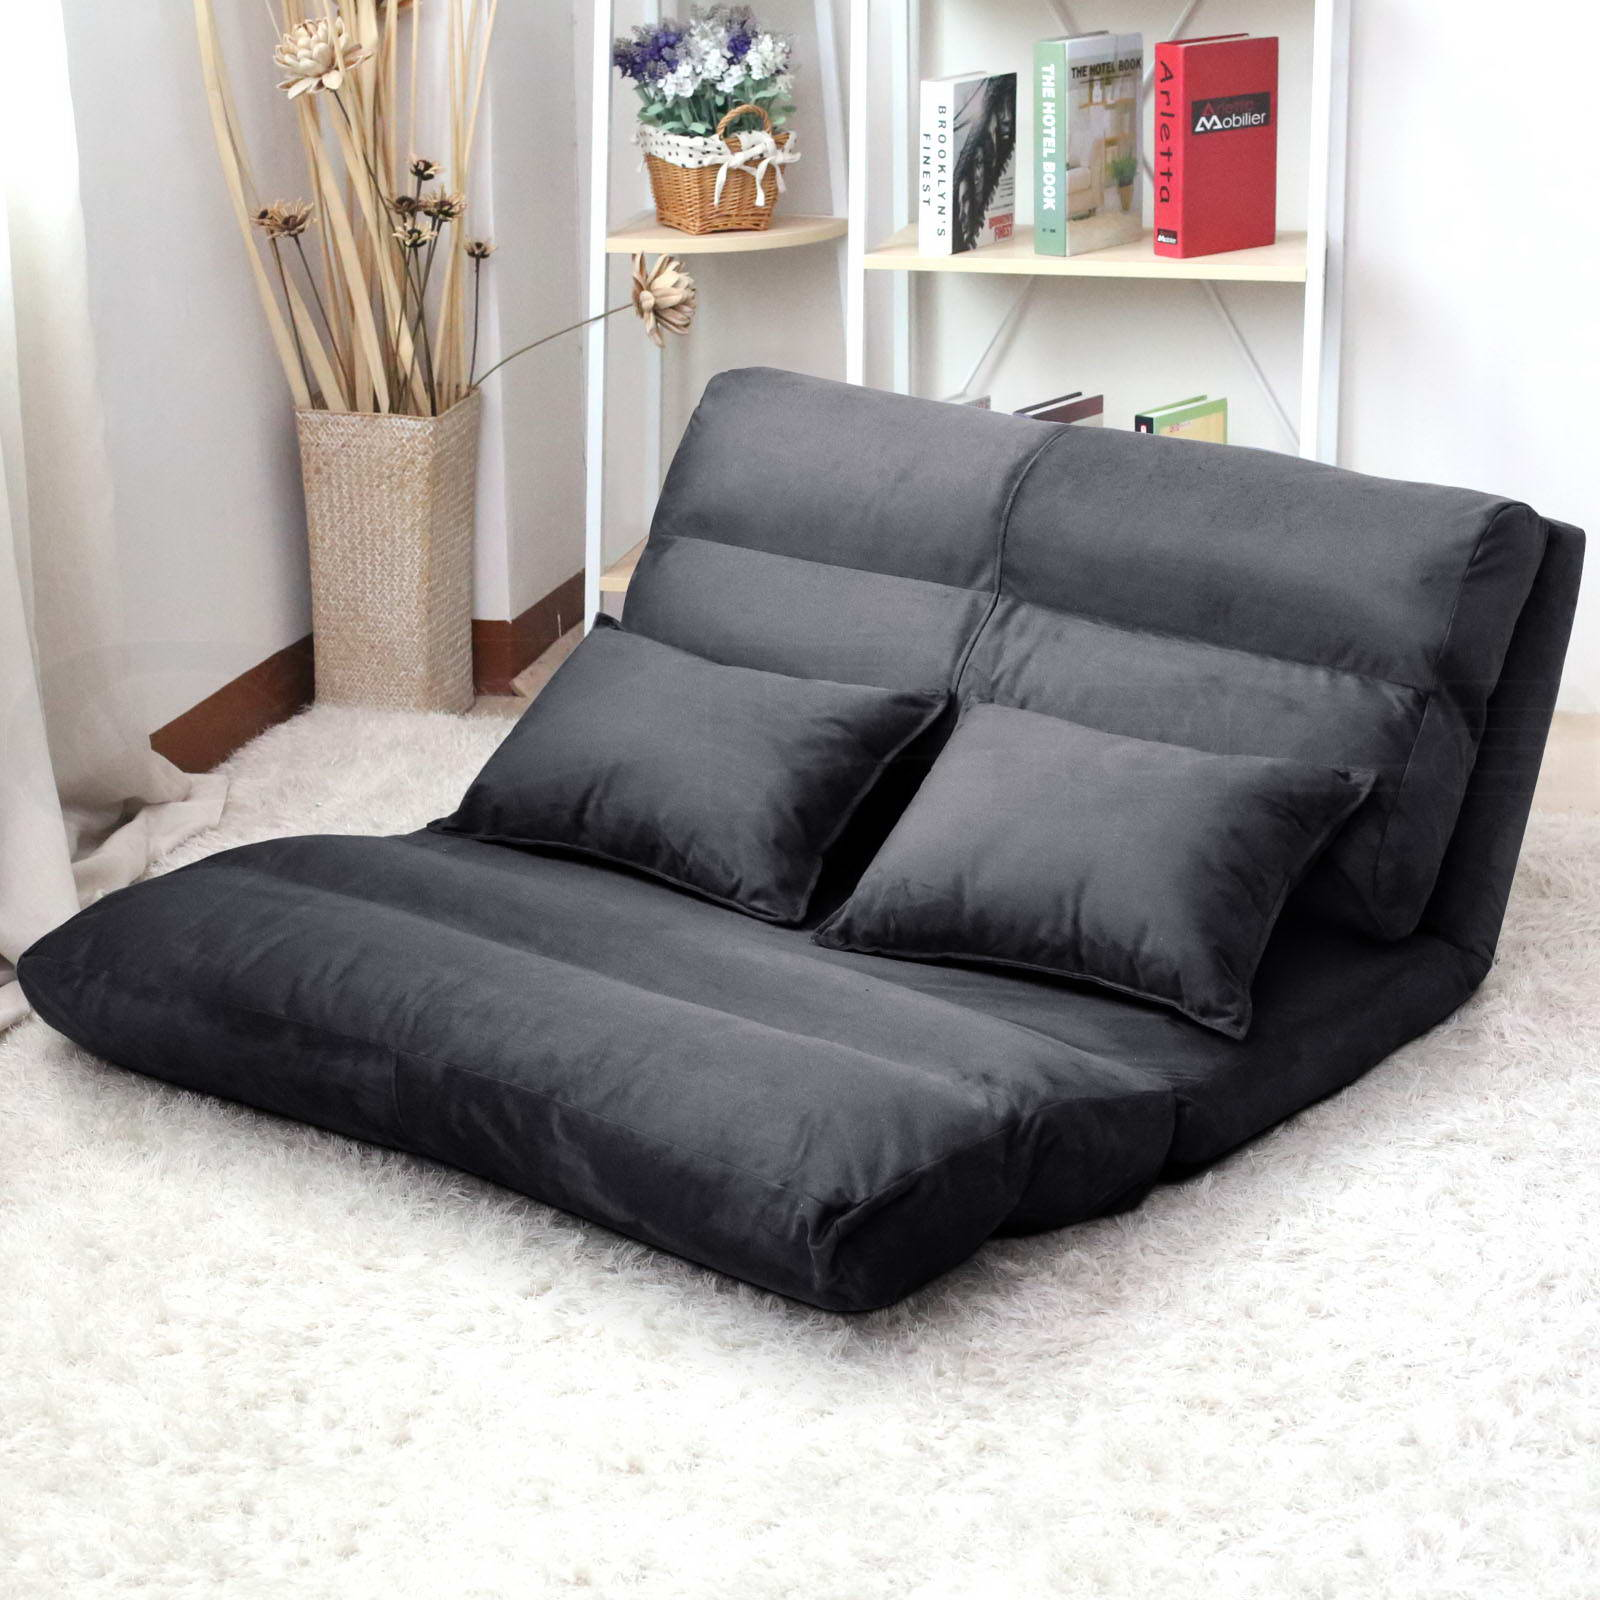 Lounge sofa bed double size floor recliner folding chaise for Floor furniture